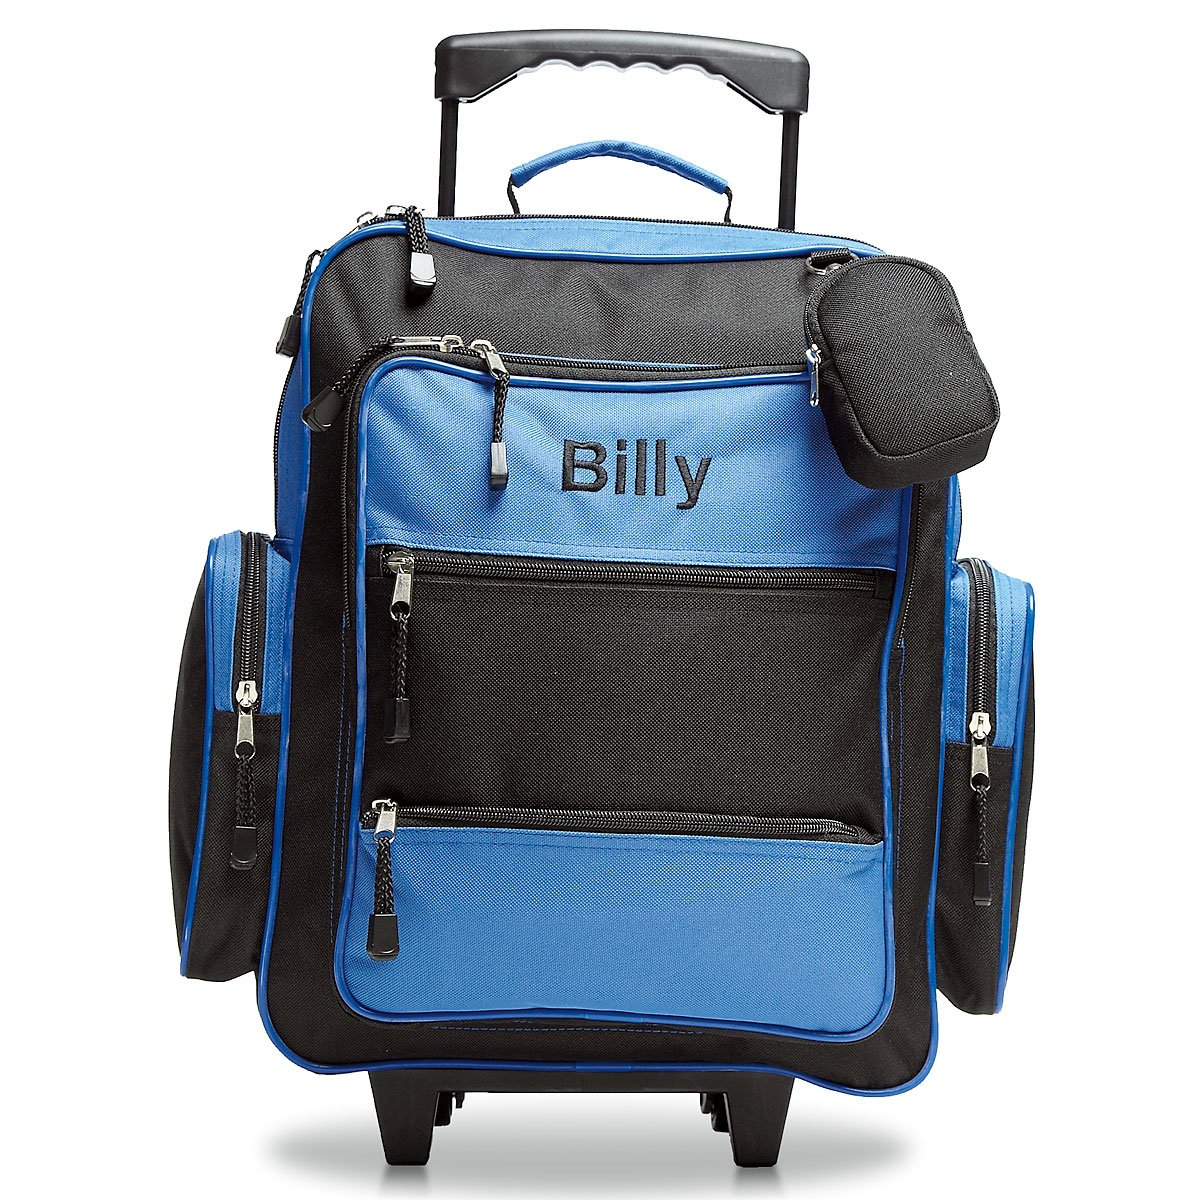 Blue and Black Personalized Kids Rolling Luggage- 5 x 12 x 16.75H, Kid's Travel Bag Kid' s Travel Bag 014845